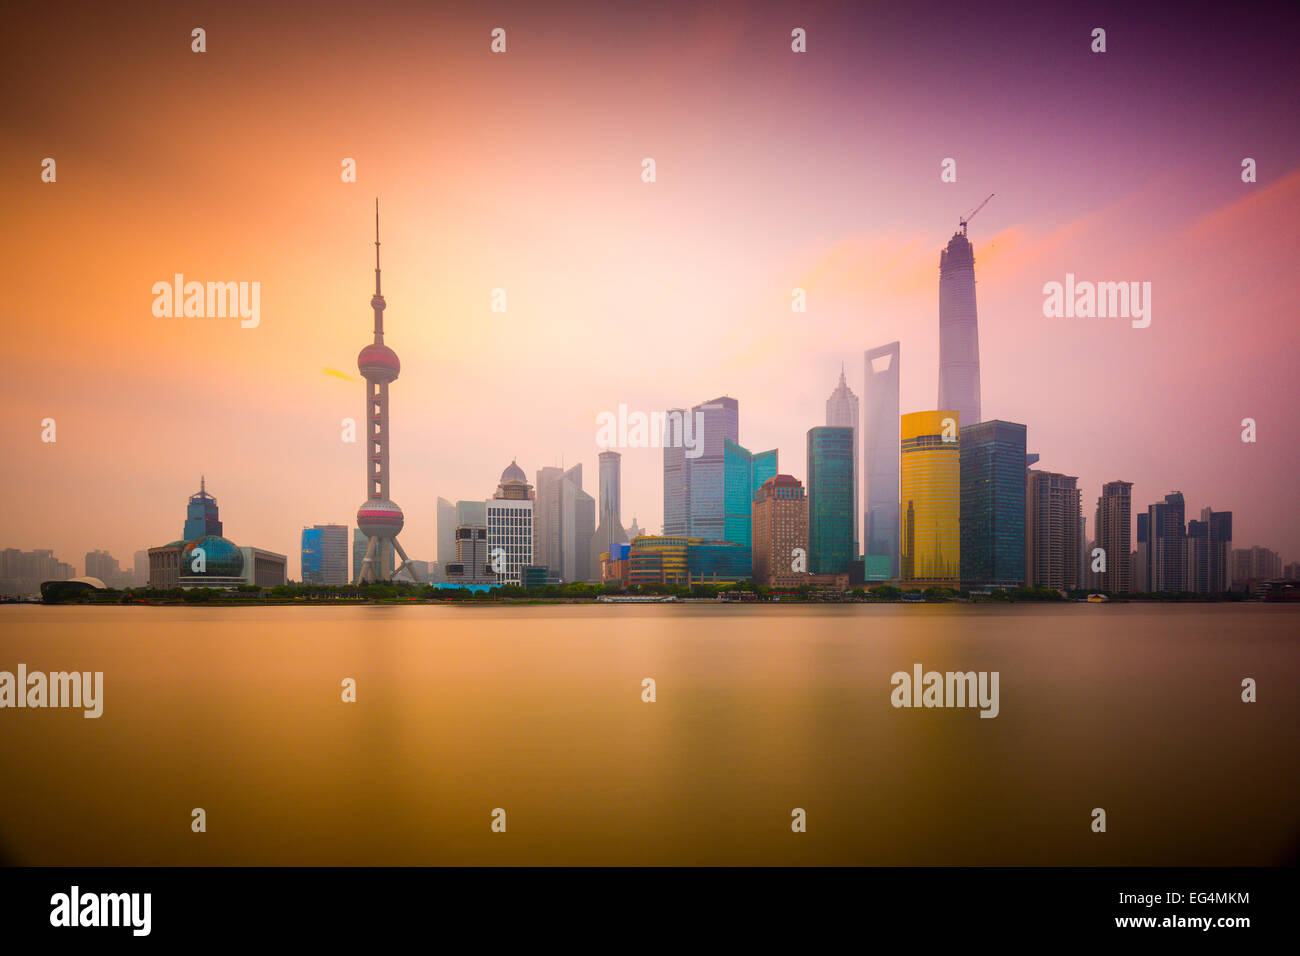 Shanghai, China cityscape viewed across the Huangpu River at dawn. - Stock Image